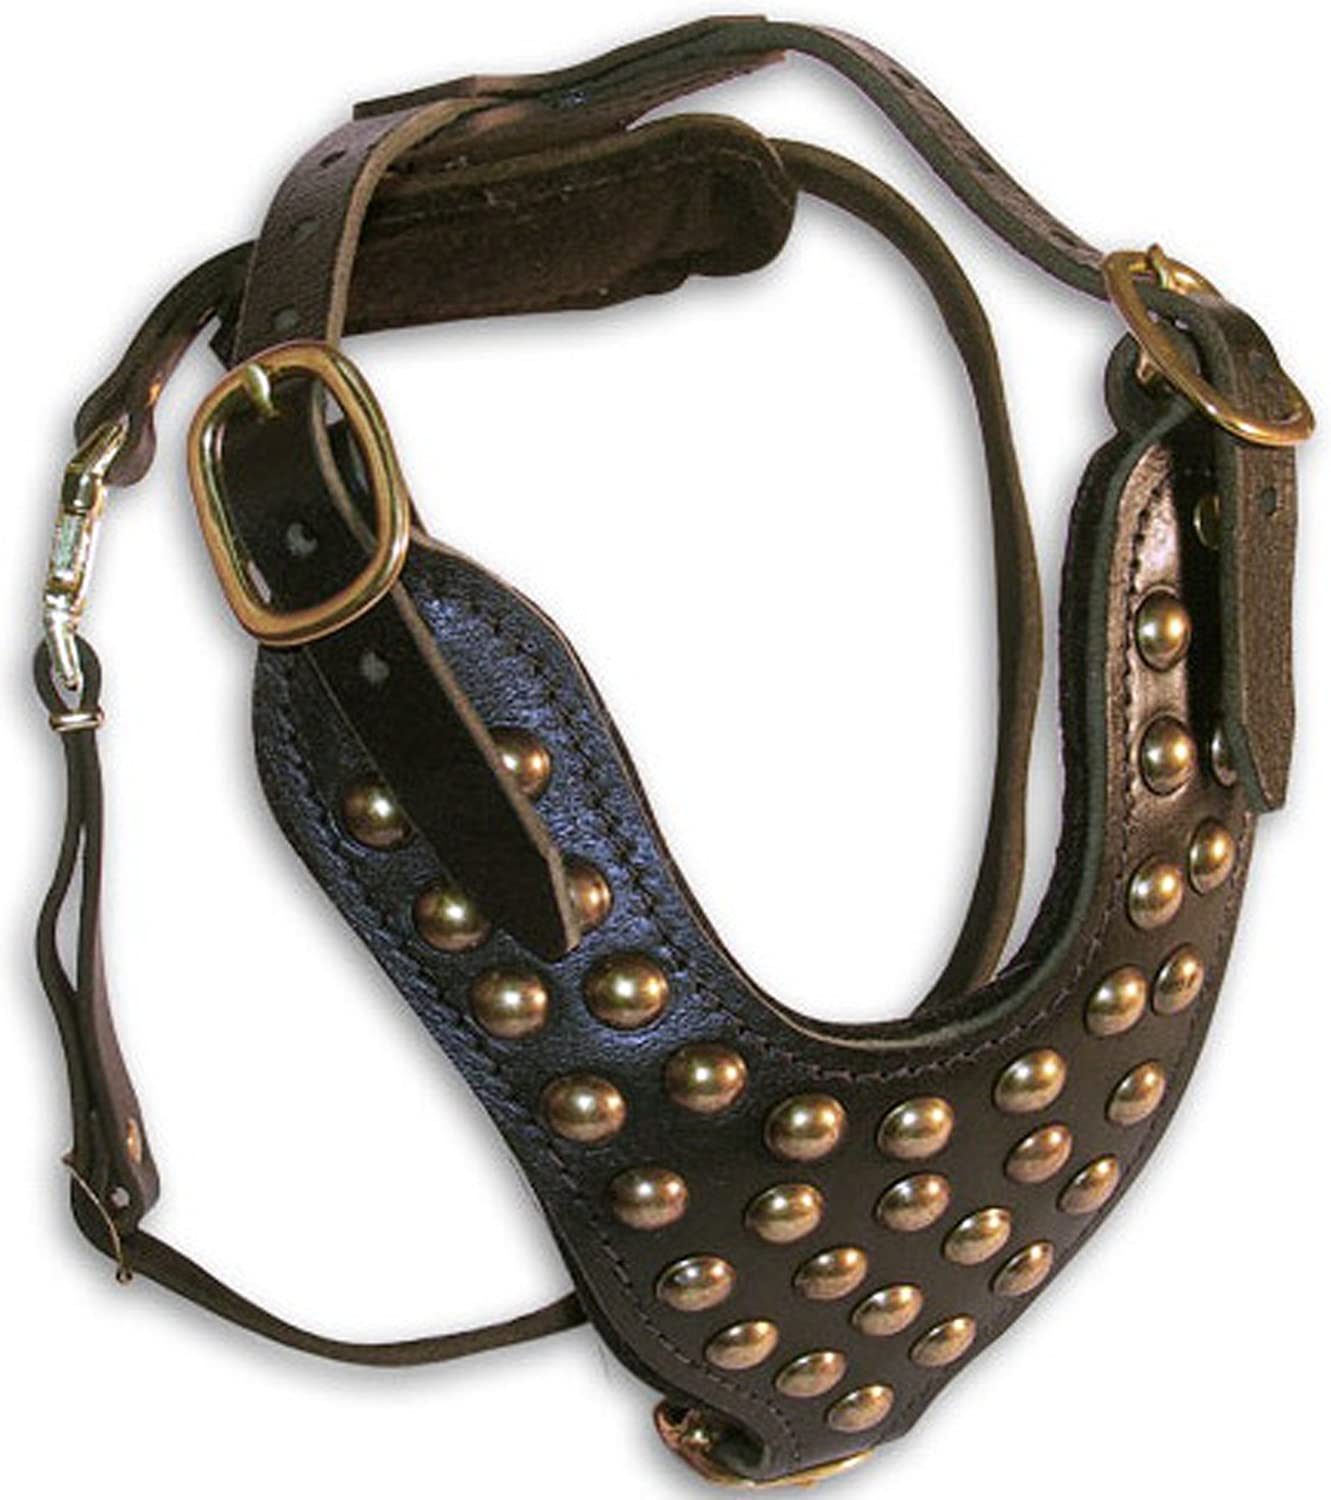 Dean and Tyler Stud Bredher Solid Brass Hardware Leather Dog Harness, Black, Medium  Fits Girth Size  20Inch to 32Inch